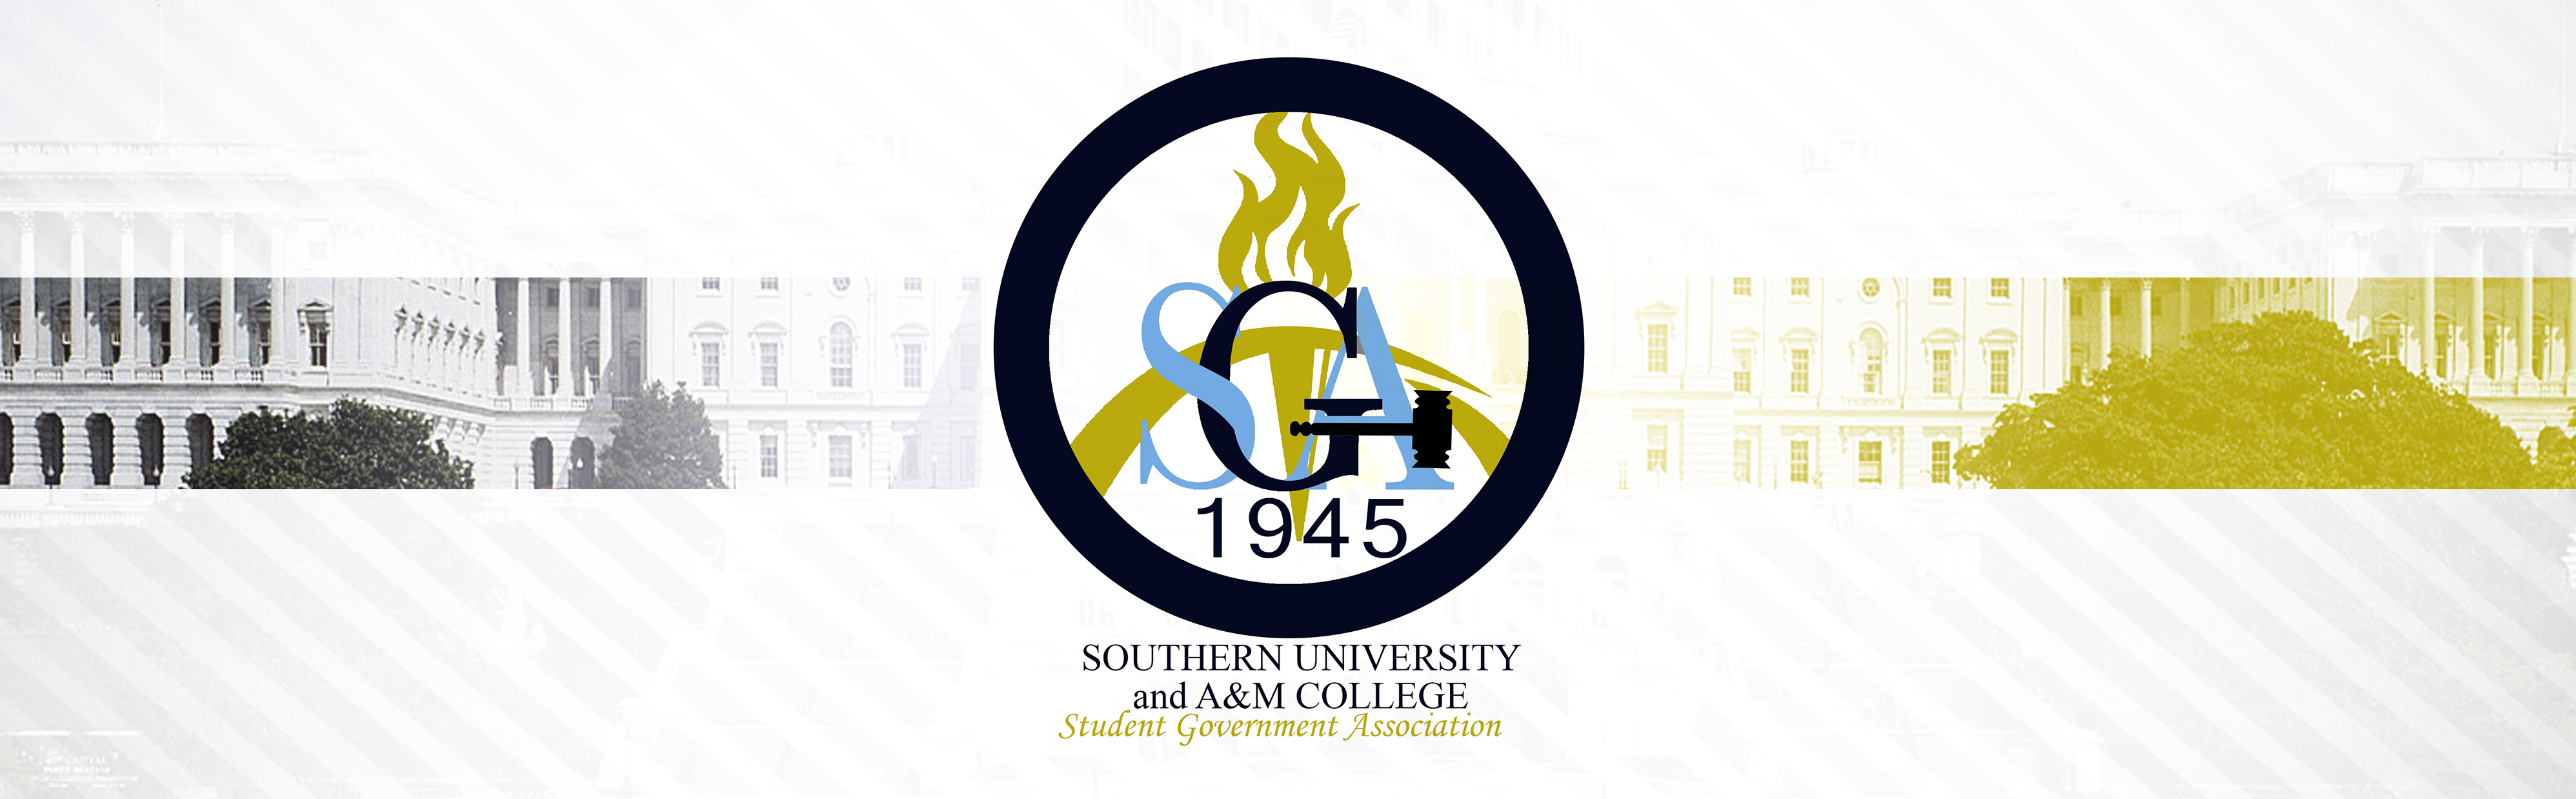 Suno Campus Map.Student Government Association Southern University And A M College